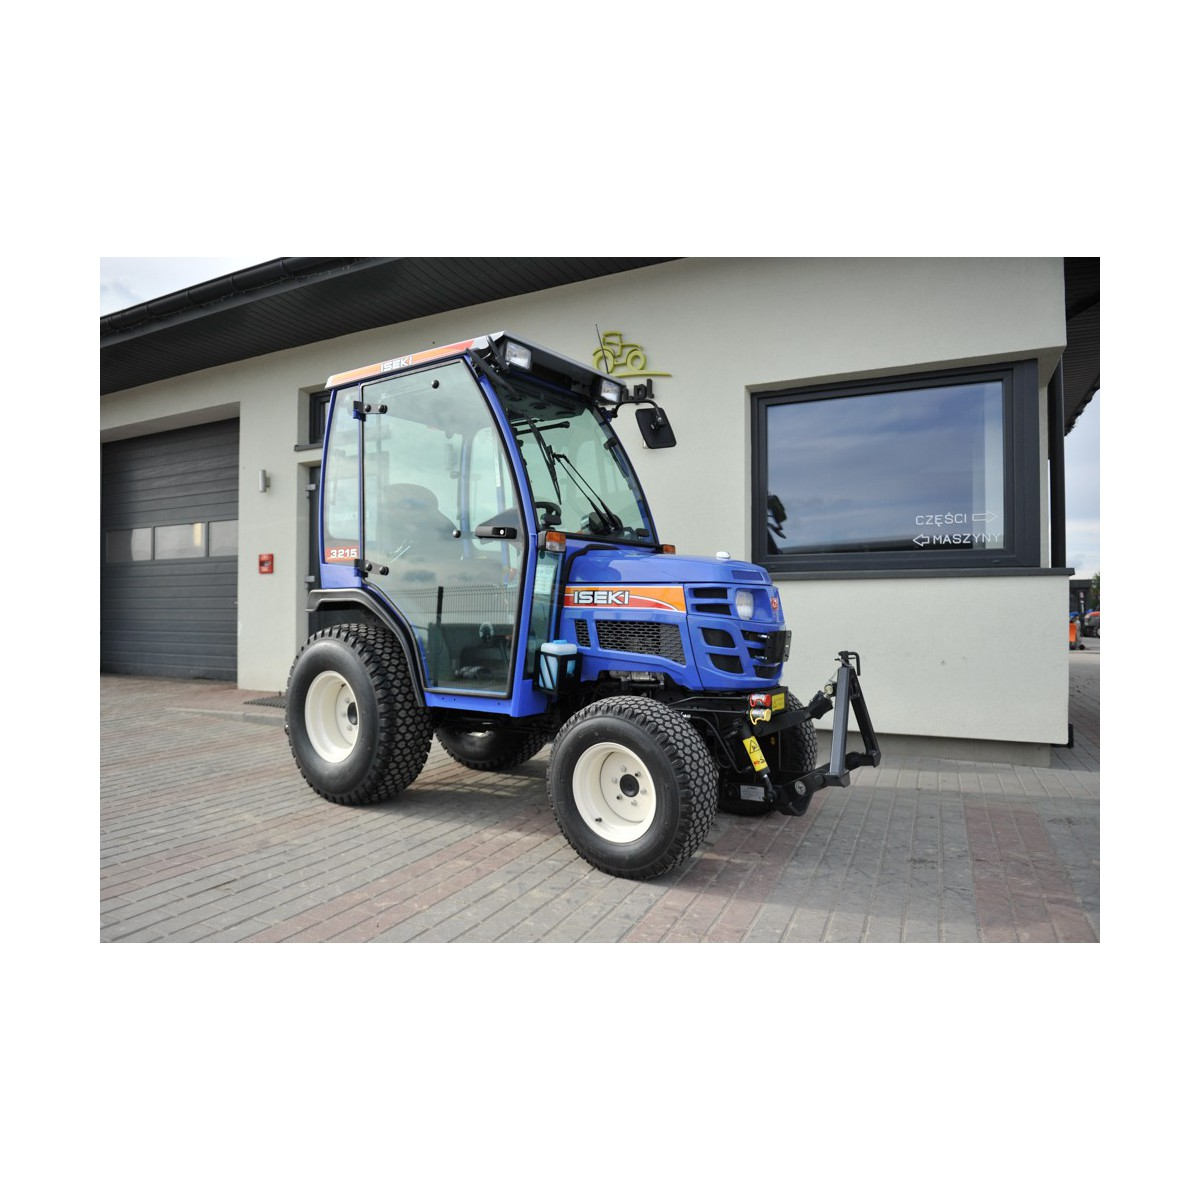 Iseki TM3215 AL with a cabin and front linkage 4x4 24KM